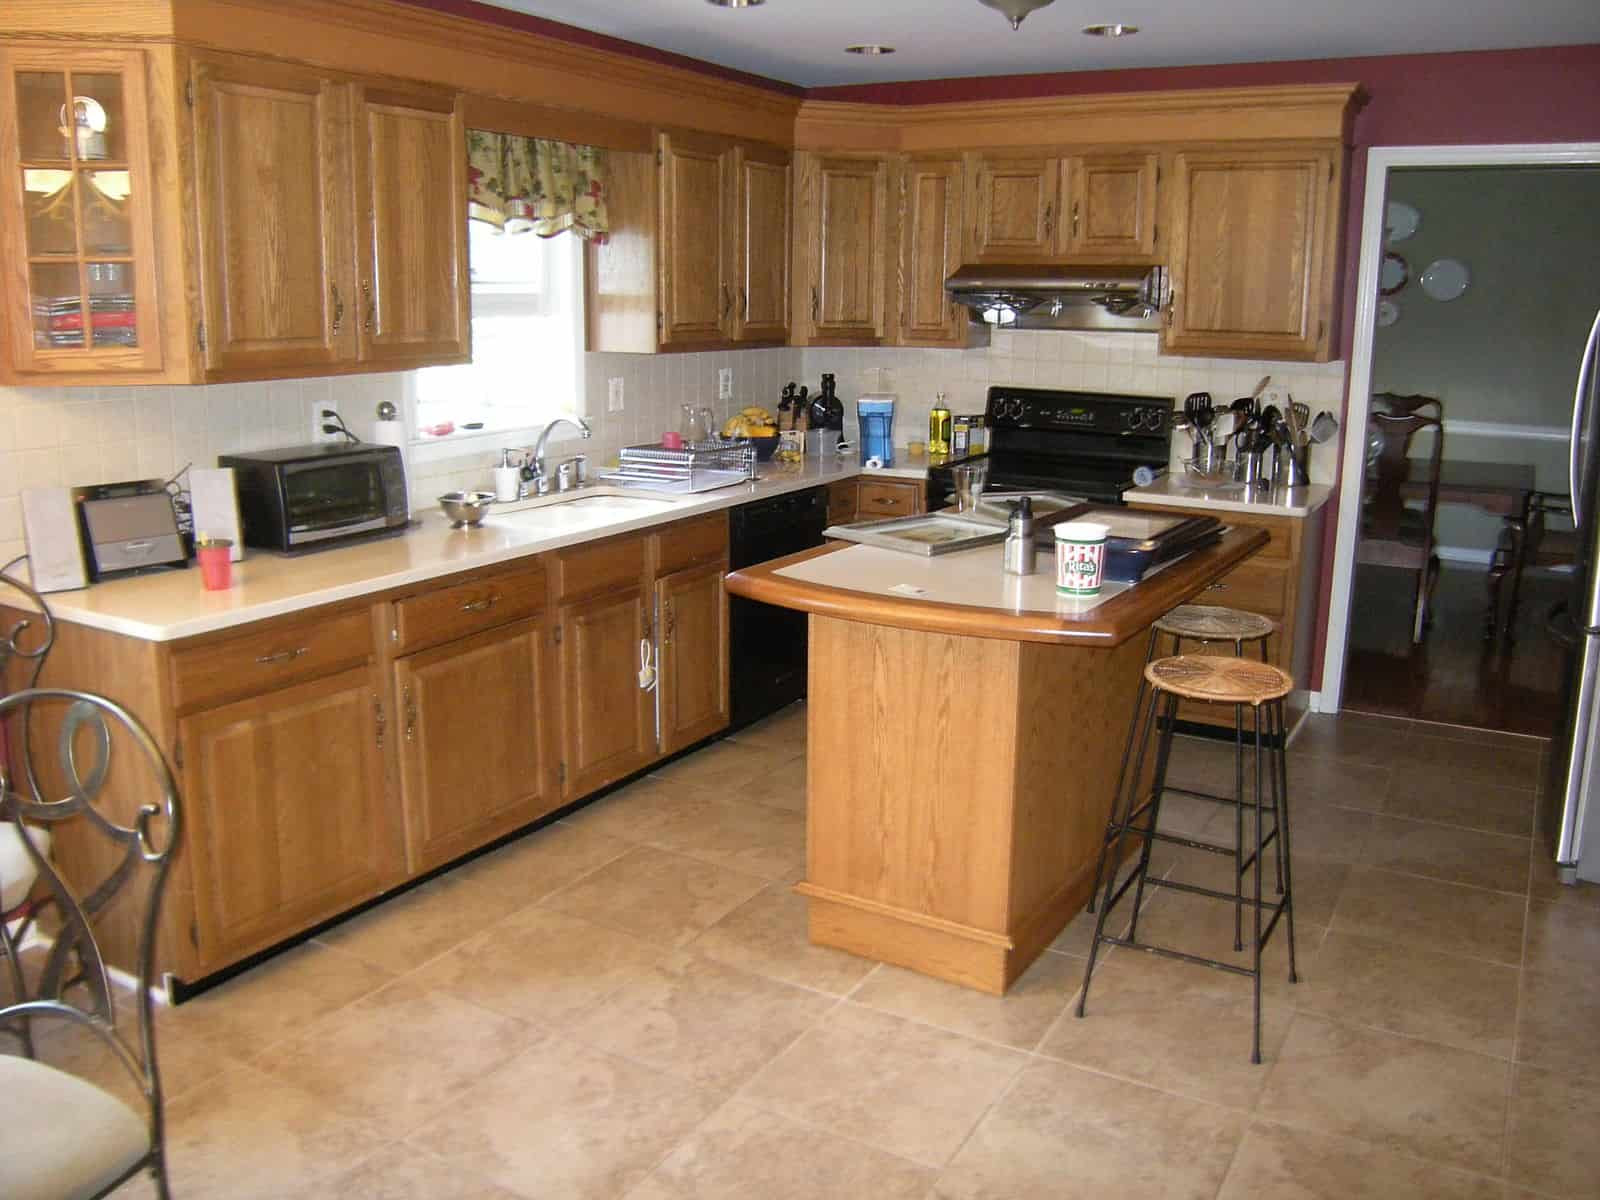 Oak Kitchen Cabinets Before and After